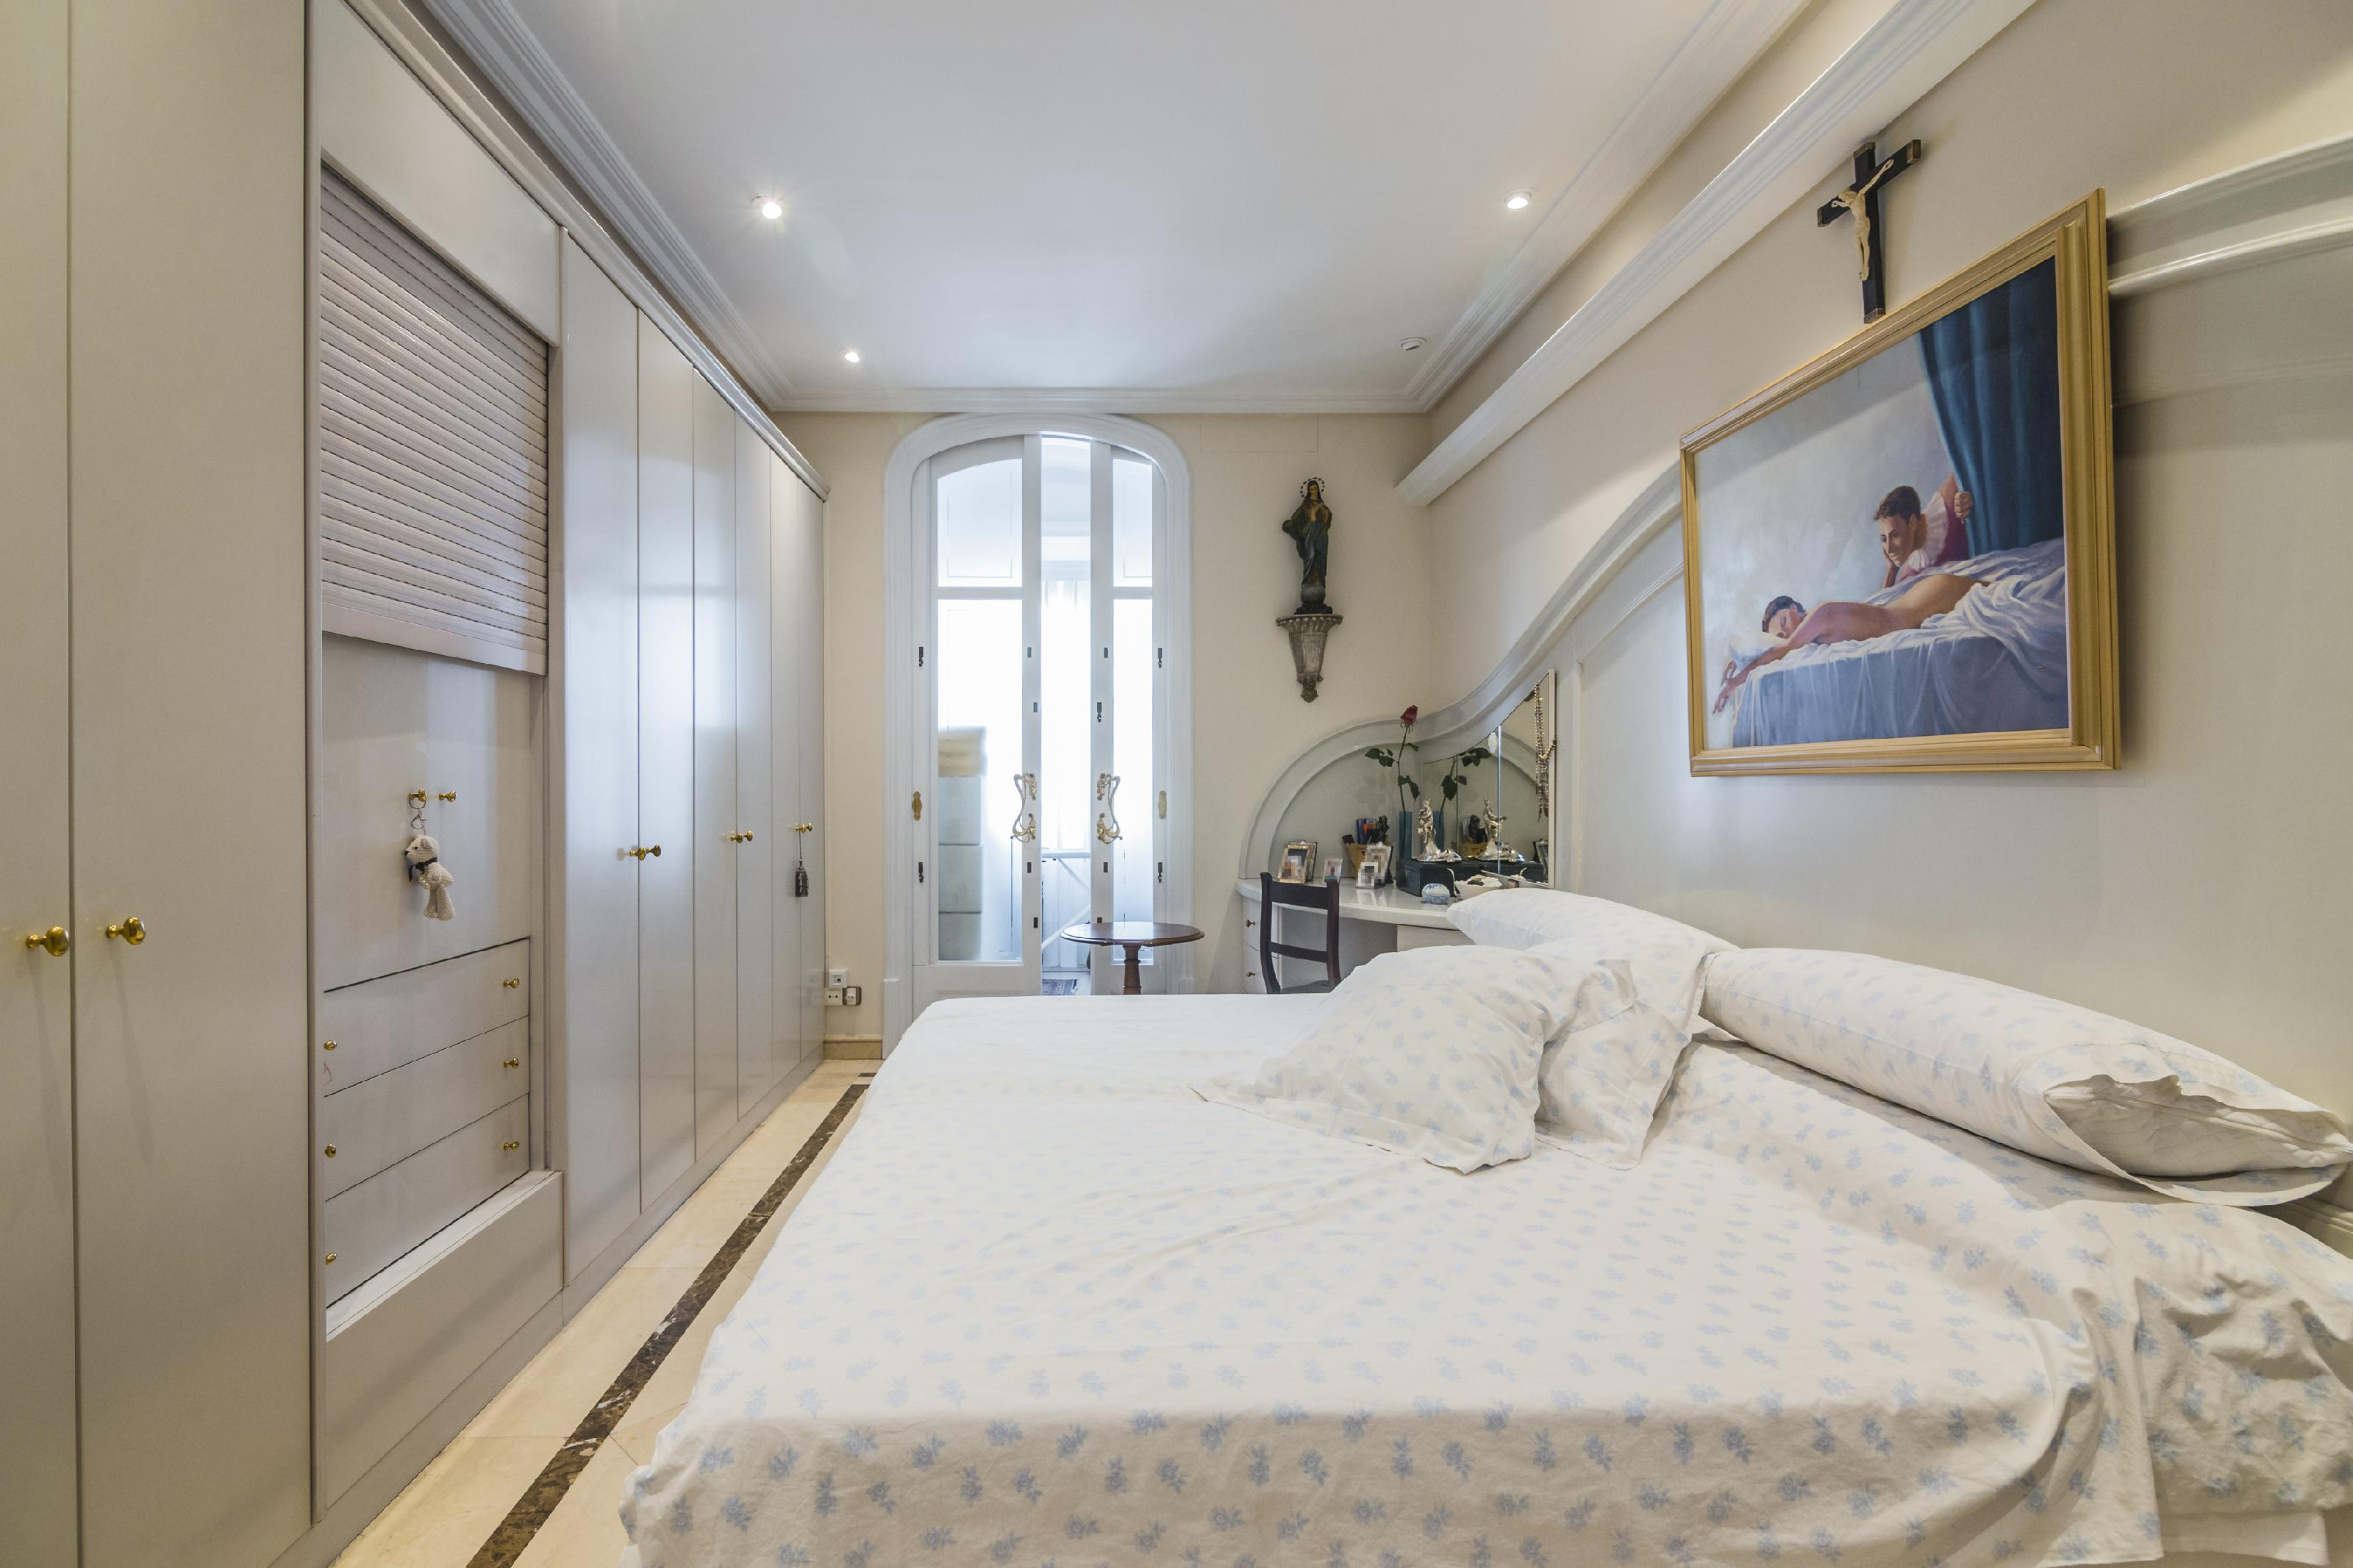 87800 Apartment for sale in Eixample, Dreta Eixample 9